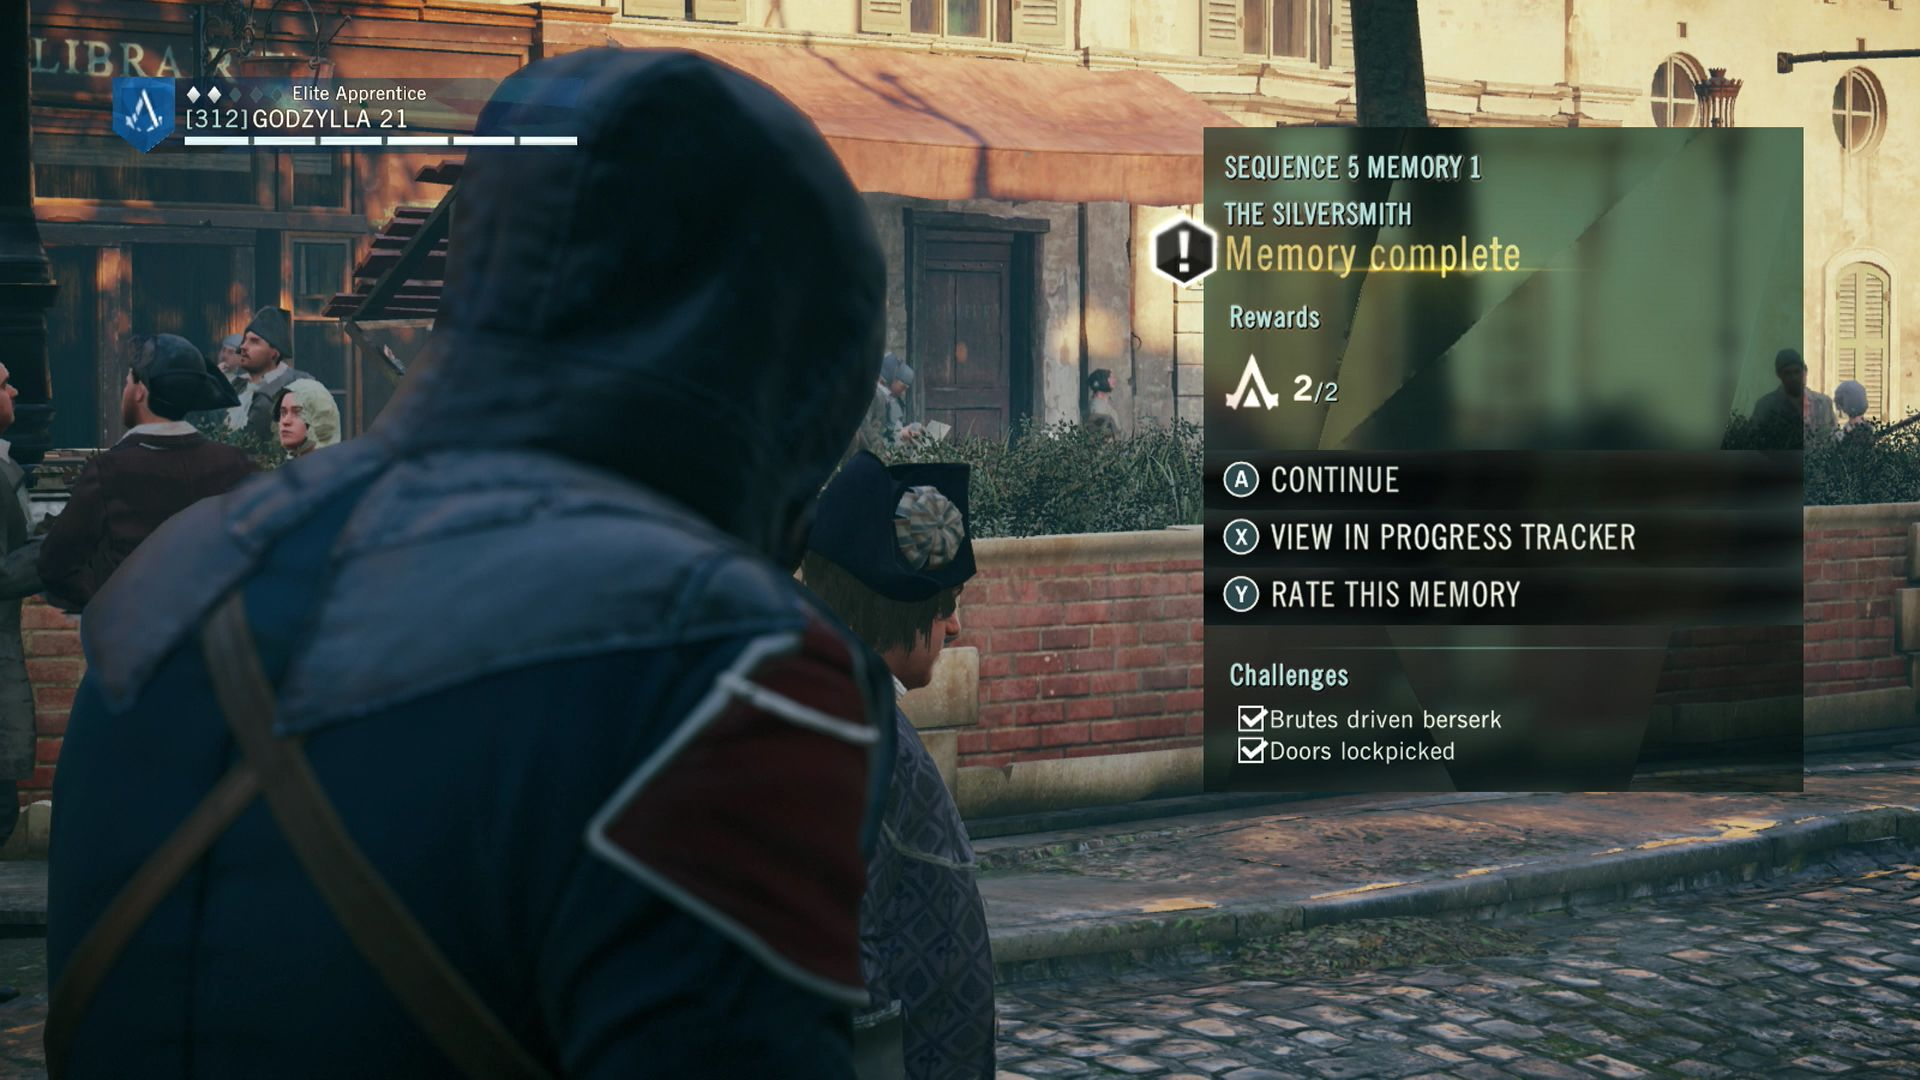 Assassin S Creed Unity Walkthrough Sequence 5 Memory 1 Vgfaq Assassin S Creed Unity Assassin S Creed Creed